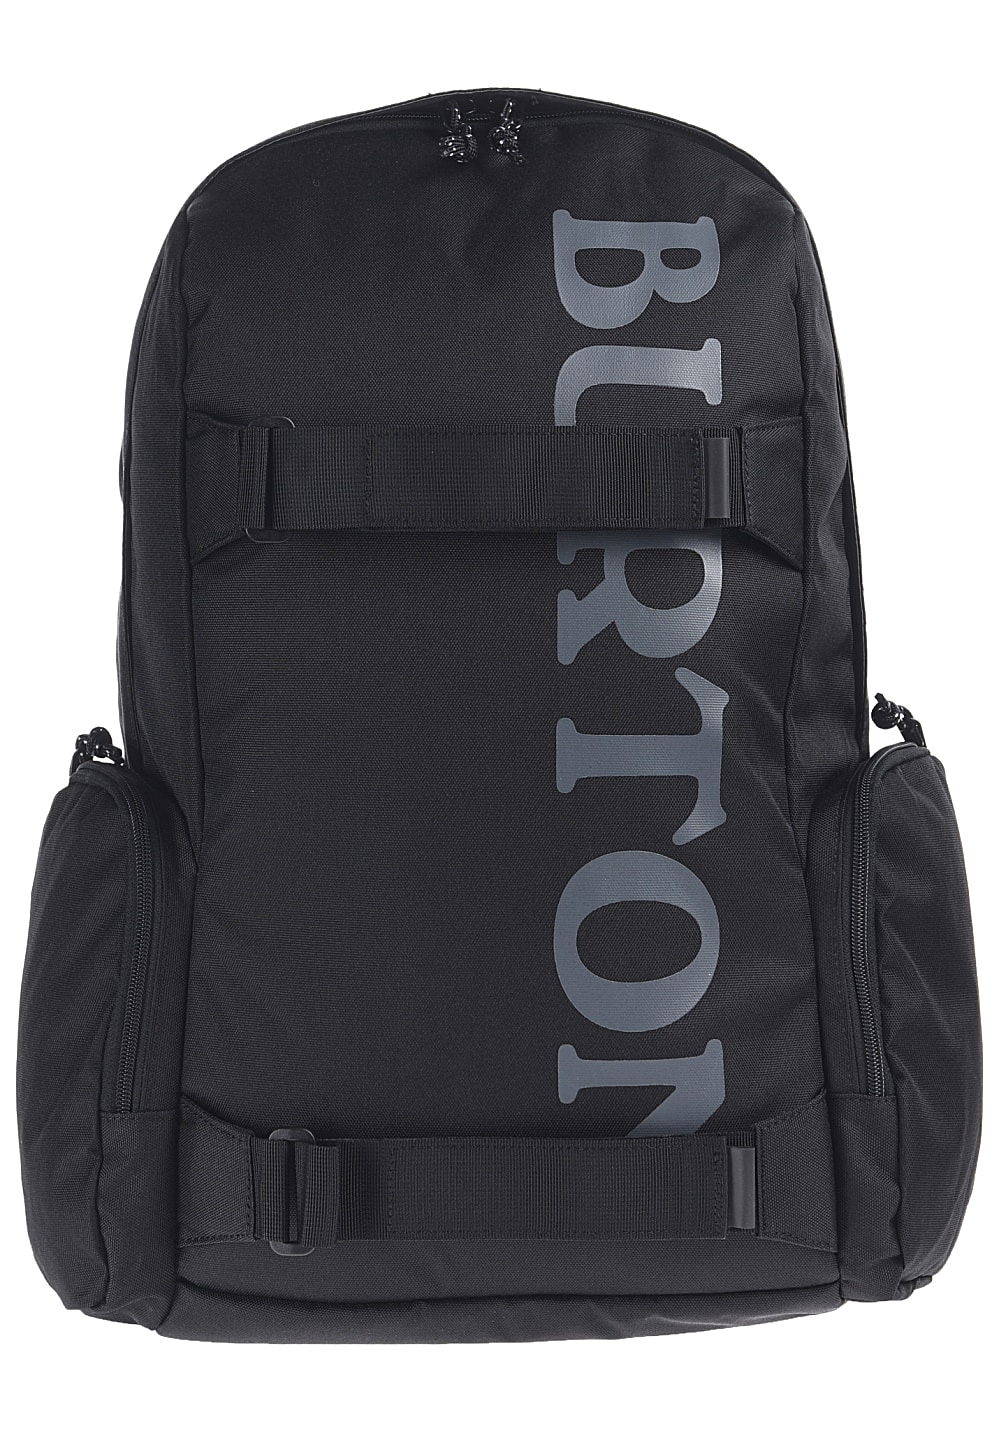 burton emphasis 26 l rucksack schwarz planet sports. Black Bedroom Furniture Sets. Home Design Ideas